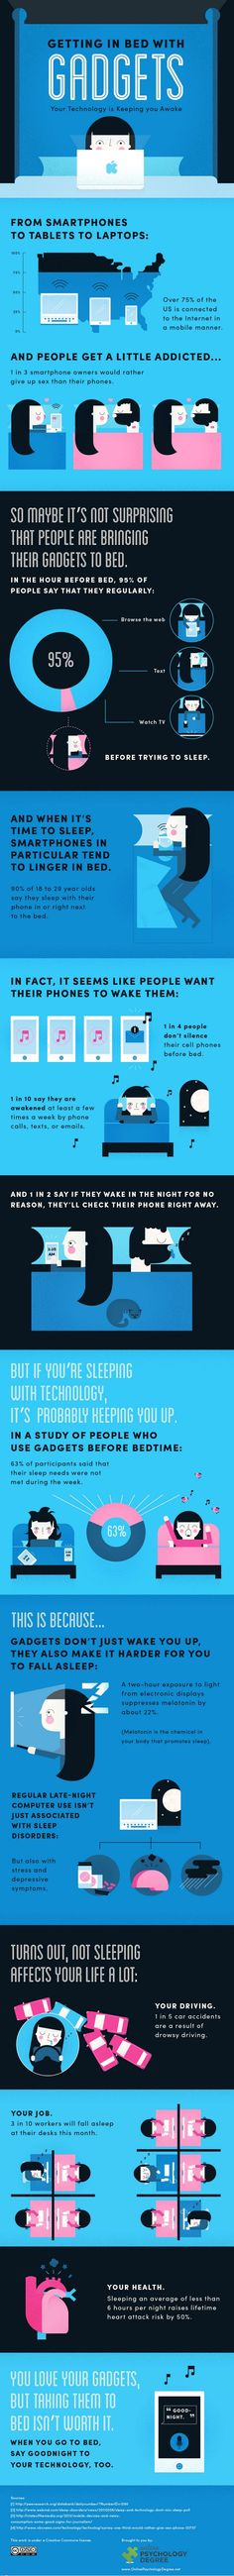 Your technology addiction might be keeping you awake! Turn the phones off before going to sleep.